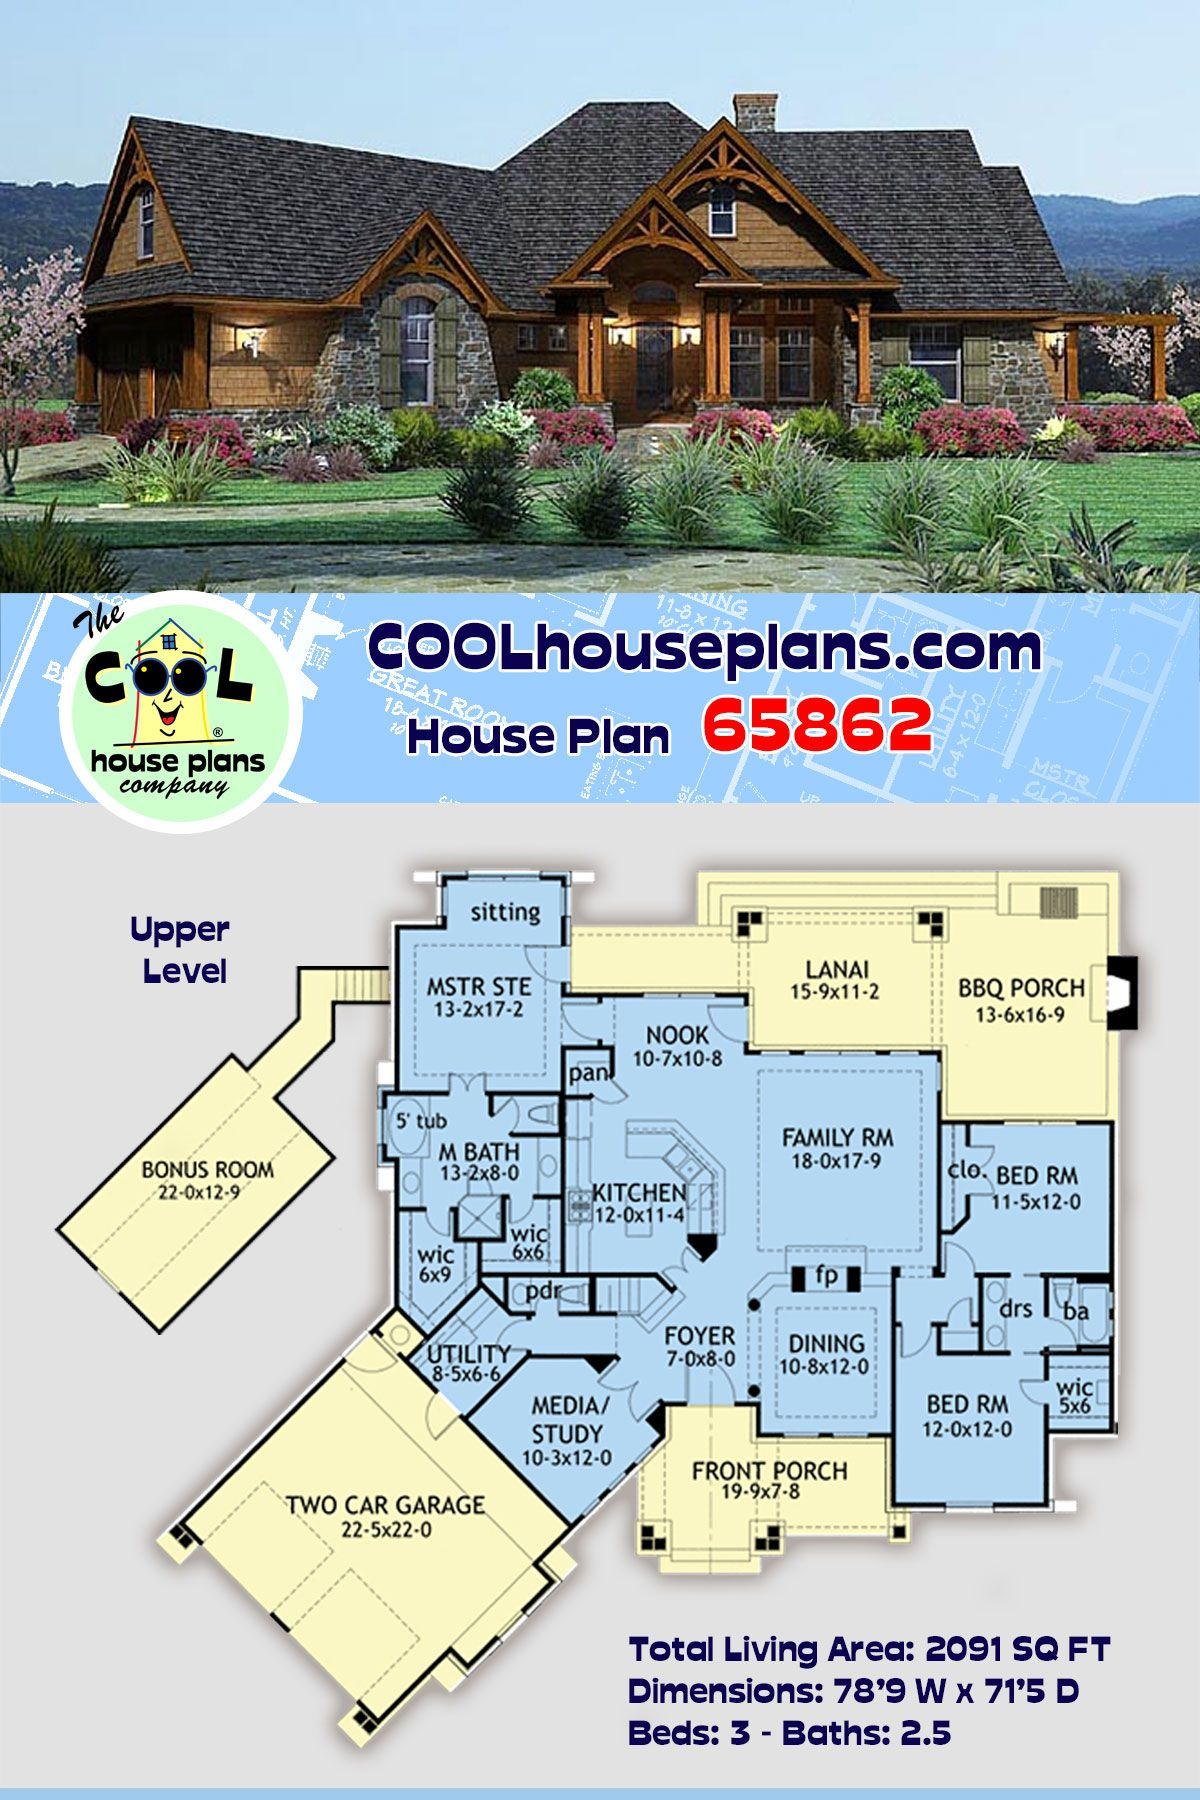 Tuscan Style House Plan 65862 With 3 Bed 3 Bath 2 Car Garage Tuscan House Plans House Plans Best House Plans